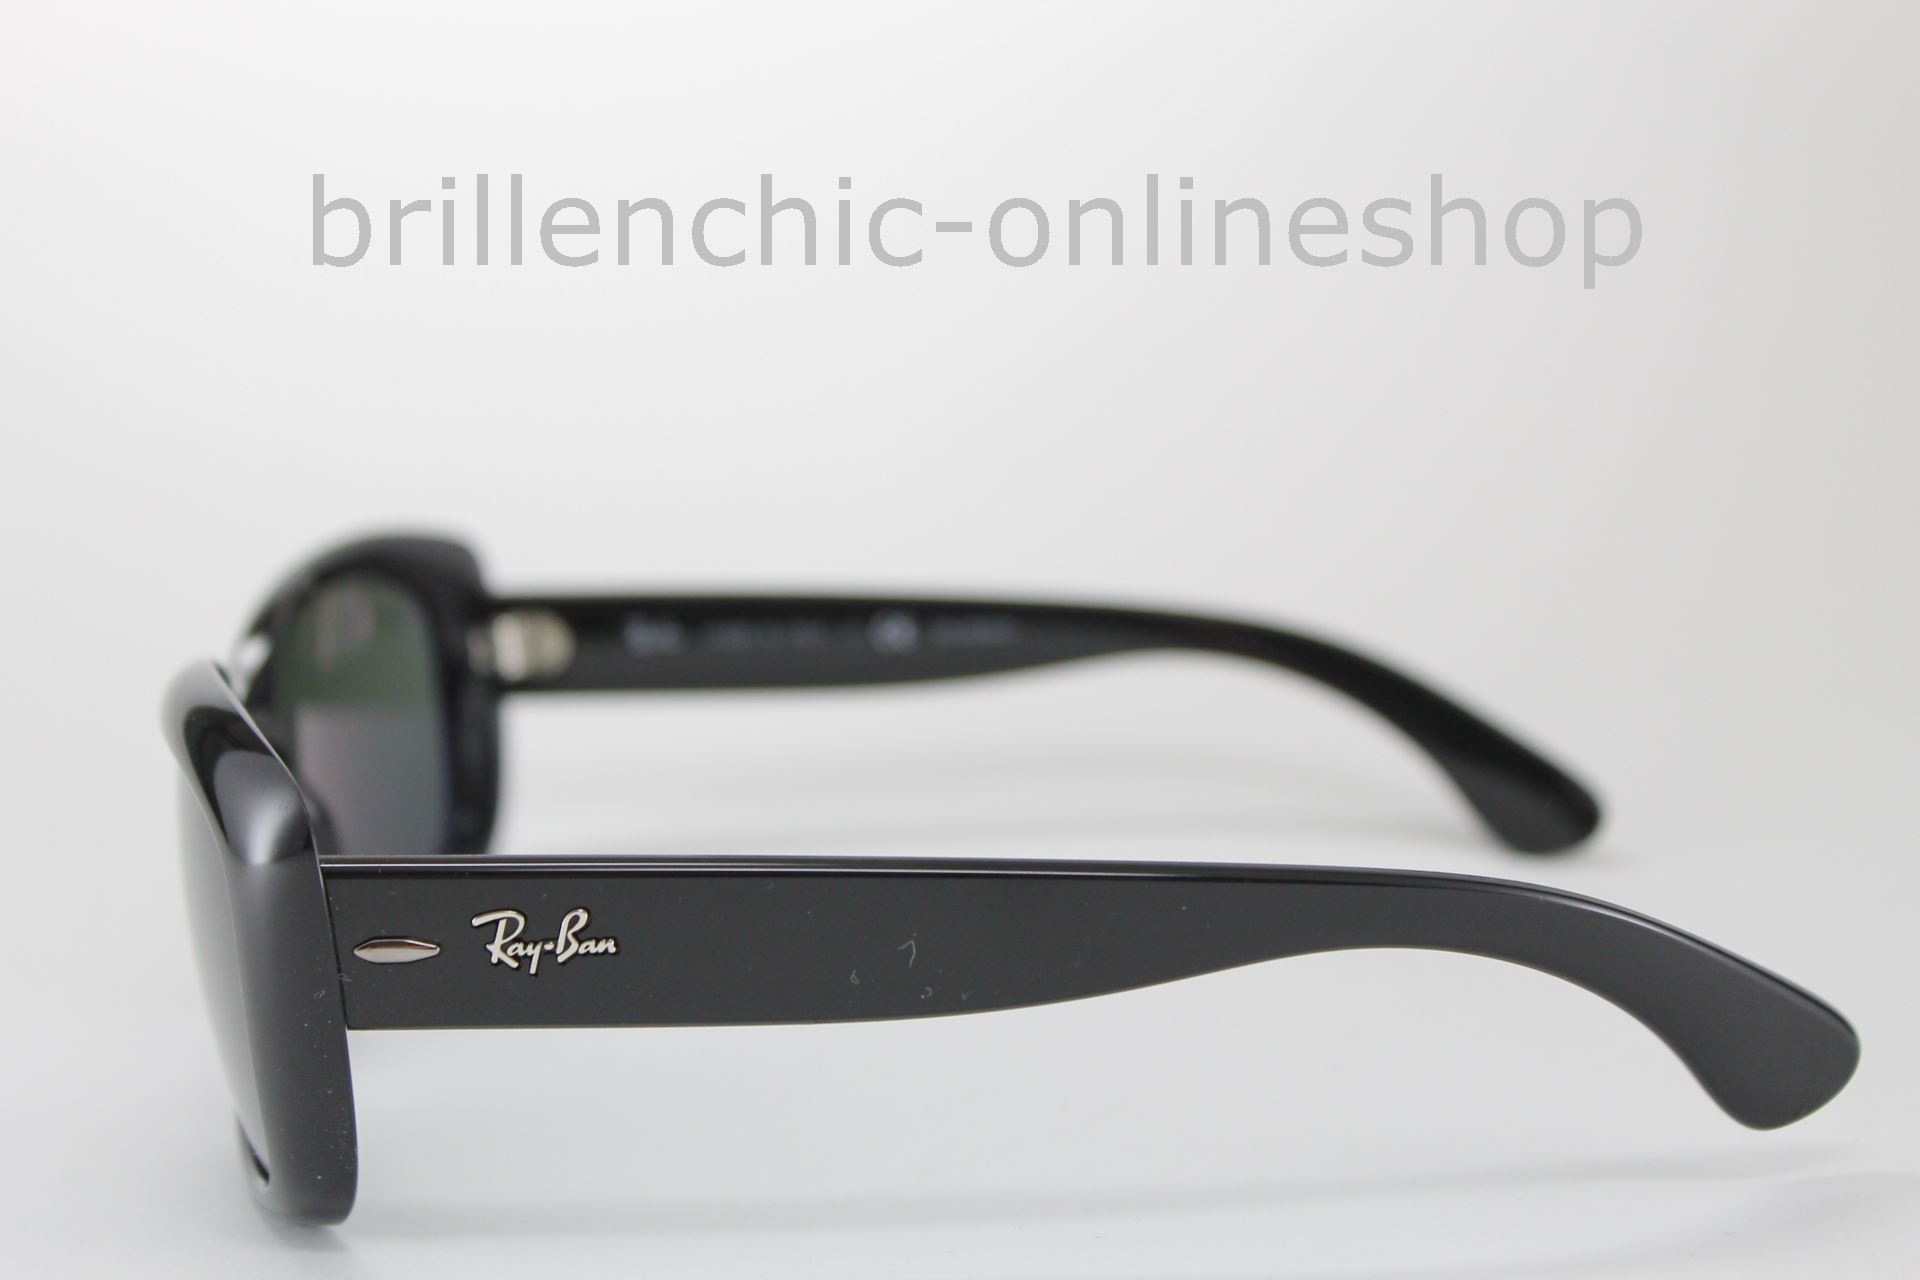 62c16e1e42 Brillenchic-onlineshop in Berlin - Ray Ban JACKIE OHH RB 4101 601 58 ...